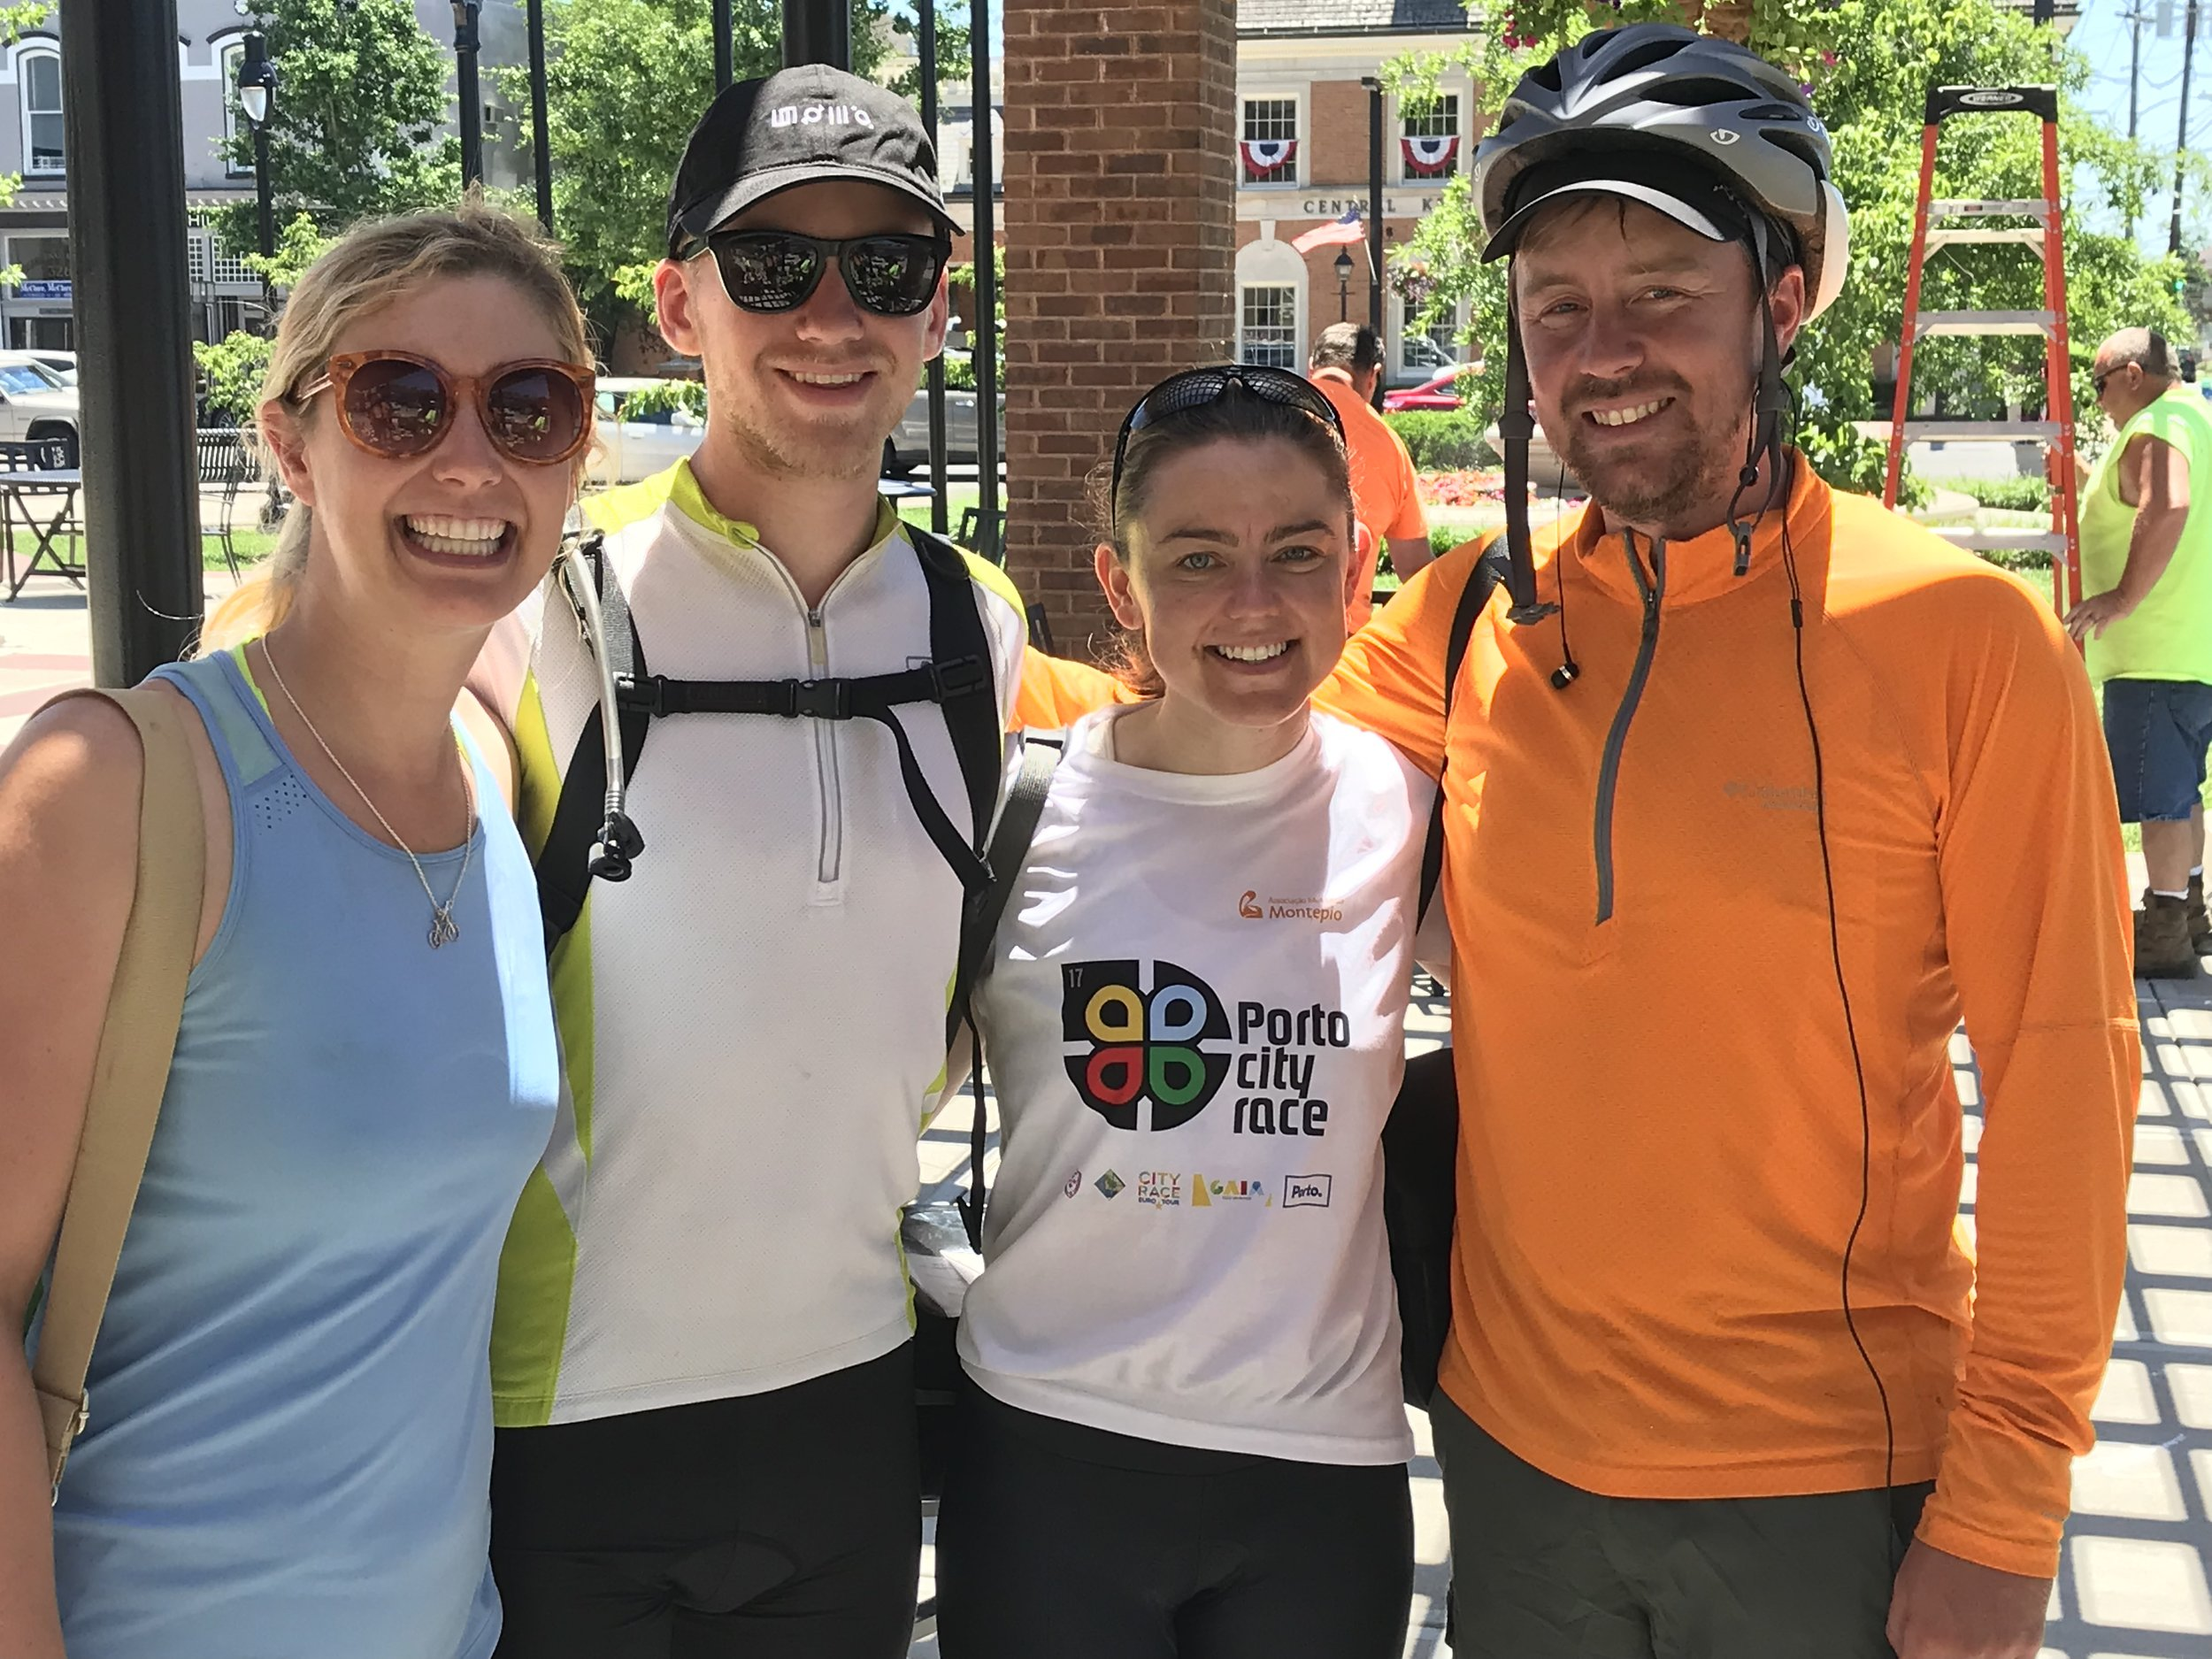 More TransAmerica cycling buddies in Danville, KY (Eileeny, Scott, Becky, and Kyle), all of whom are on their venture separately. These 4 coincided for several days and nights so were able to pal around, get to know each other, and ride together for a little while.